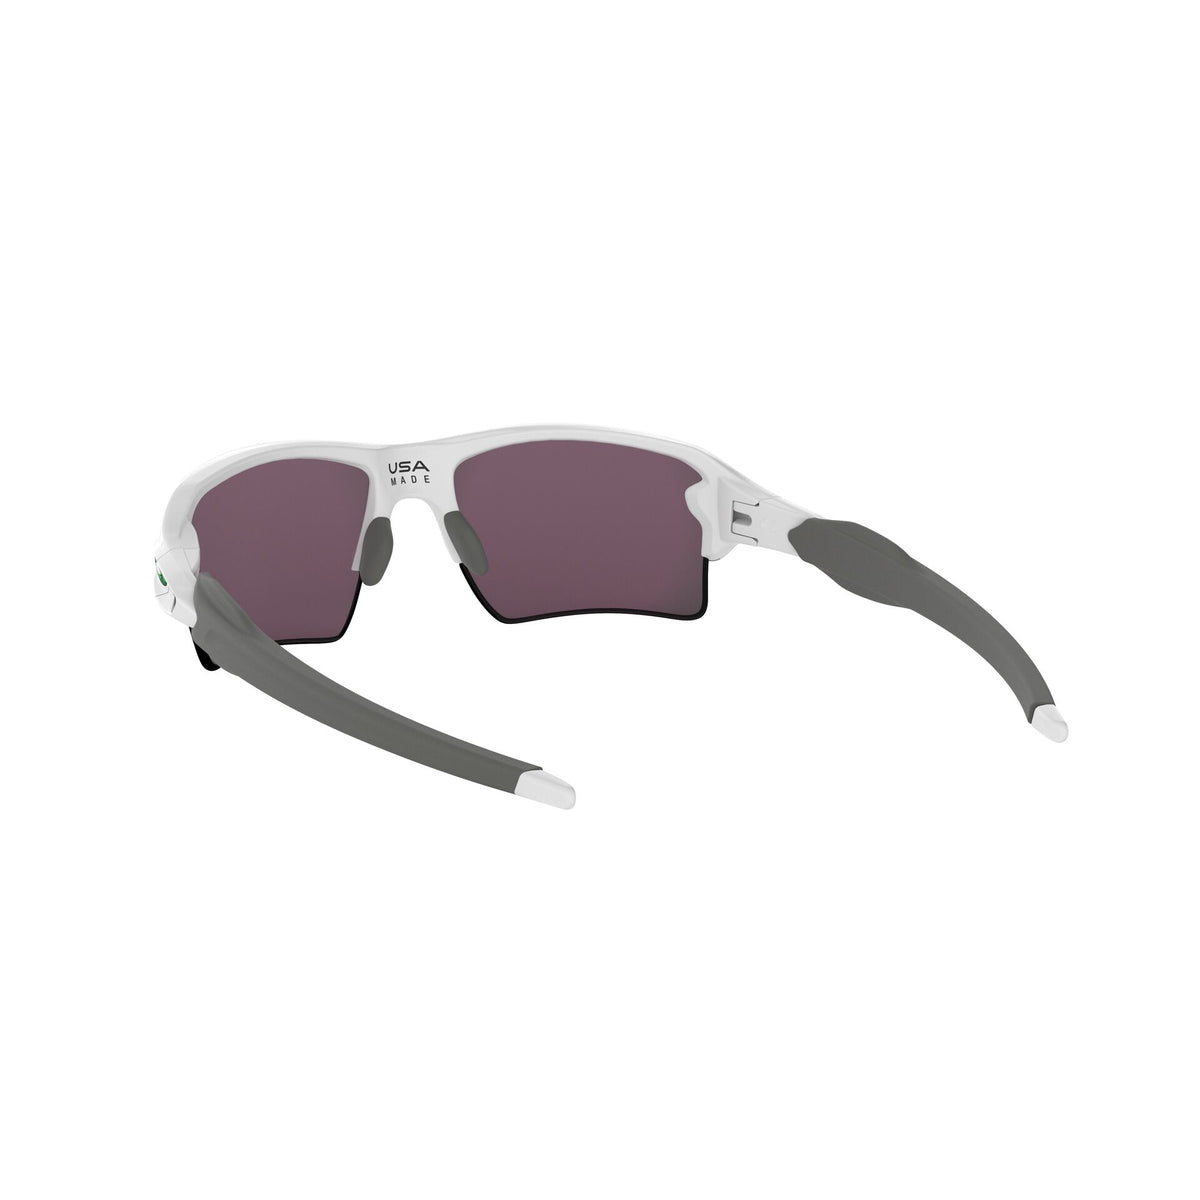 Oakley Flak 2.0 XL Sunglasses White Prizm Lens Iridium